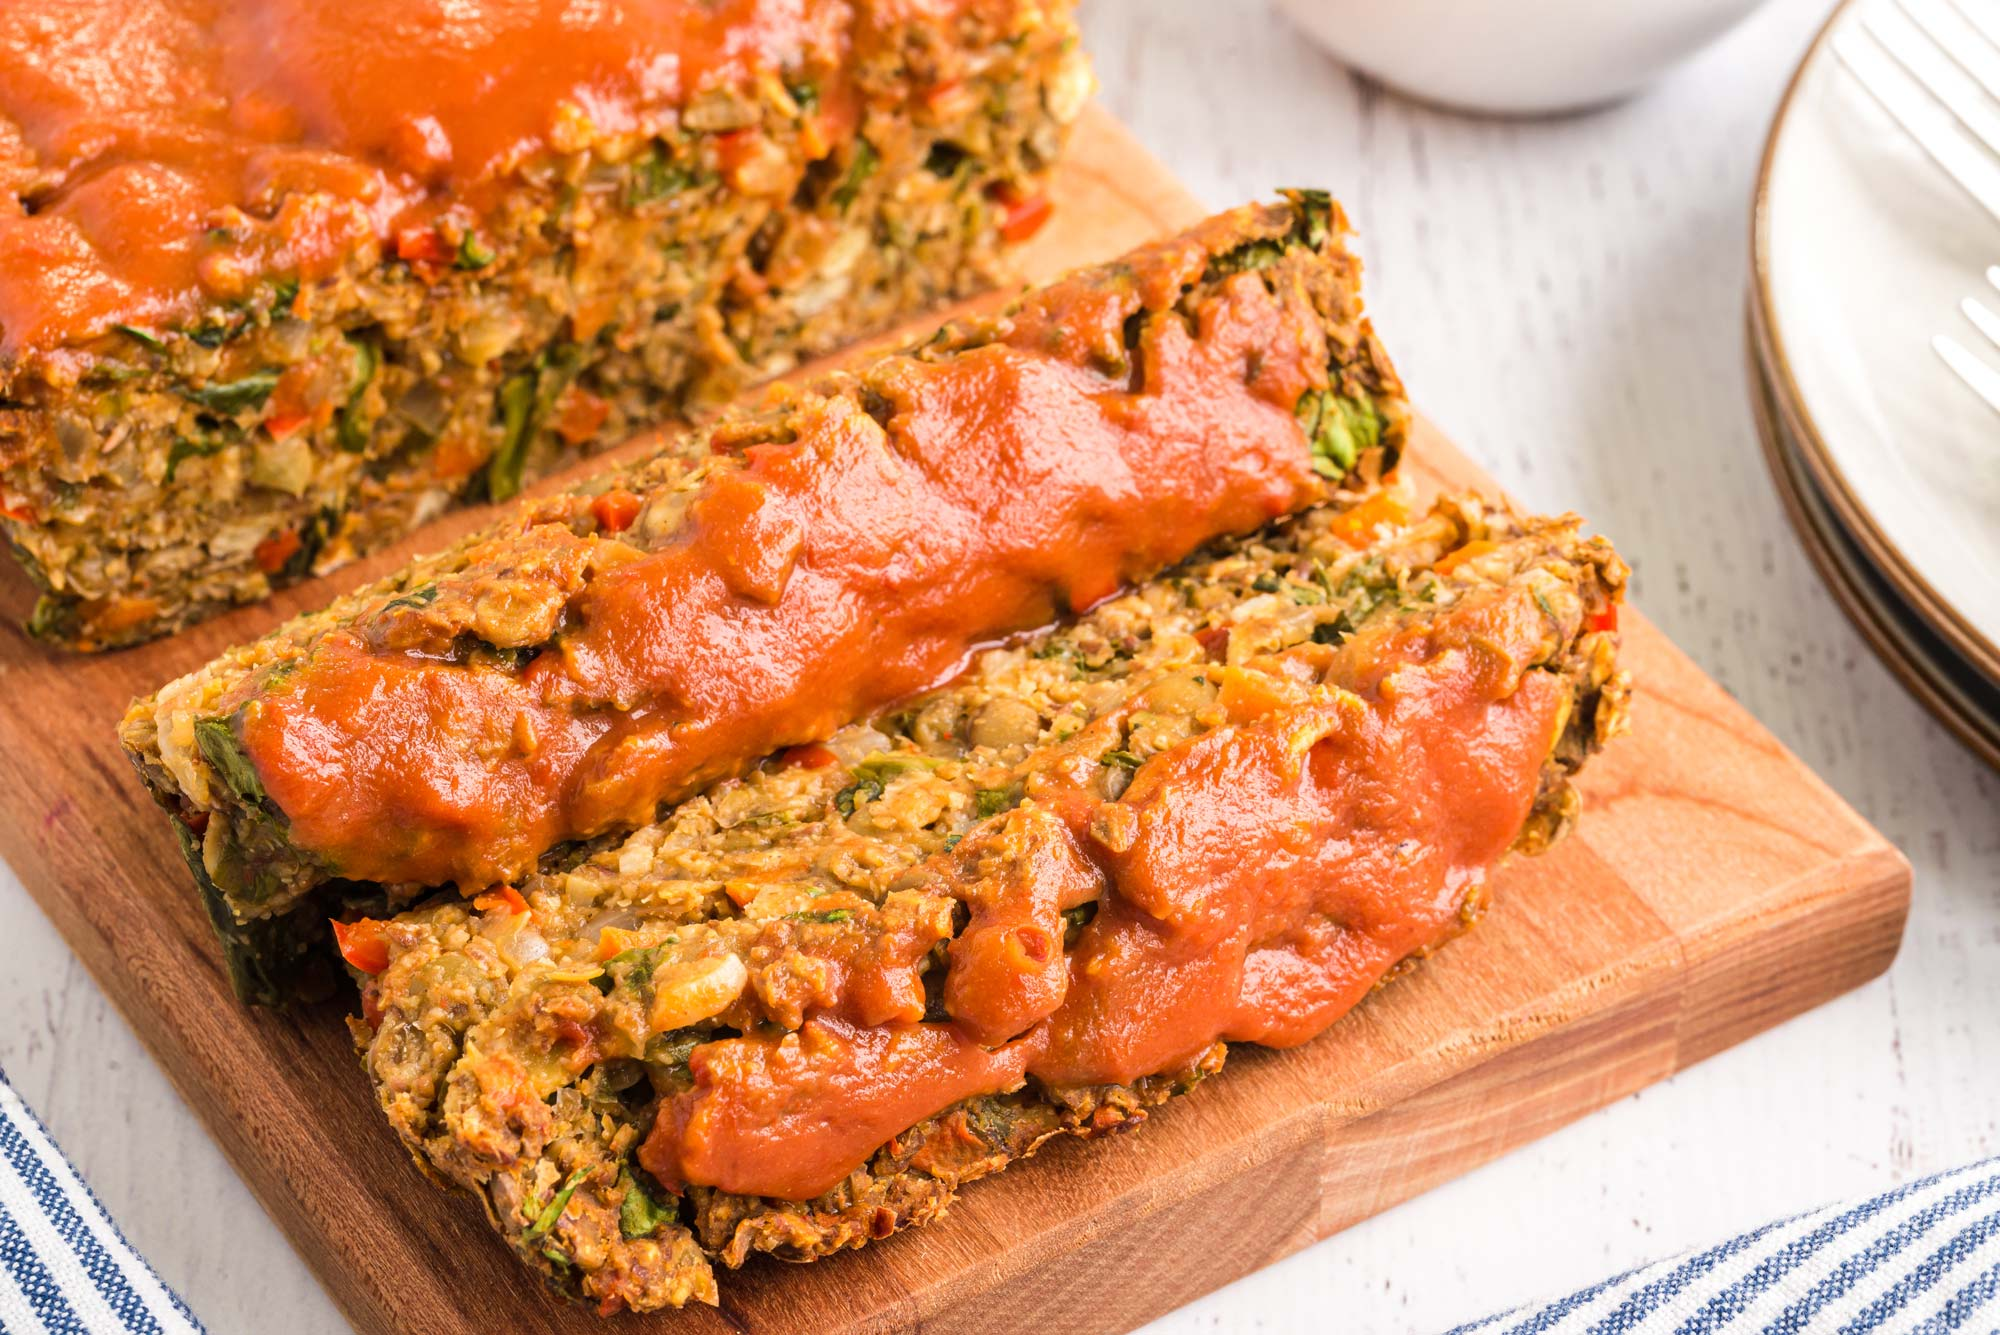 lentil flax loaf slices on cutting board